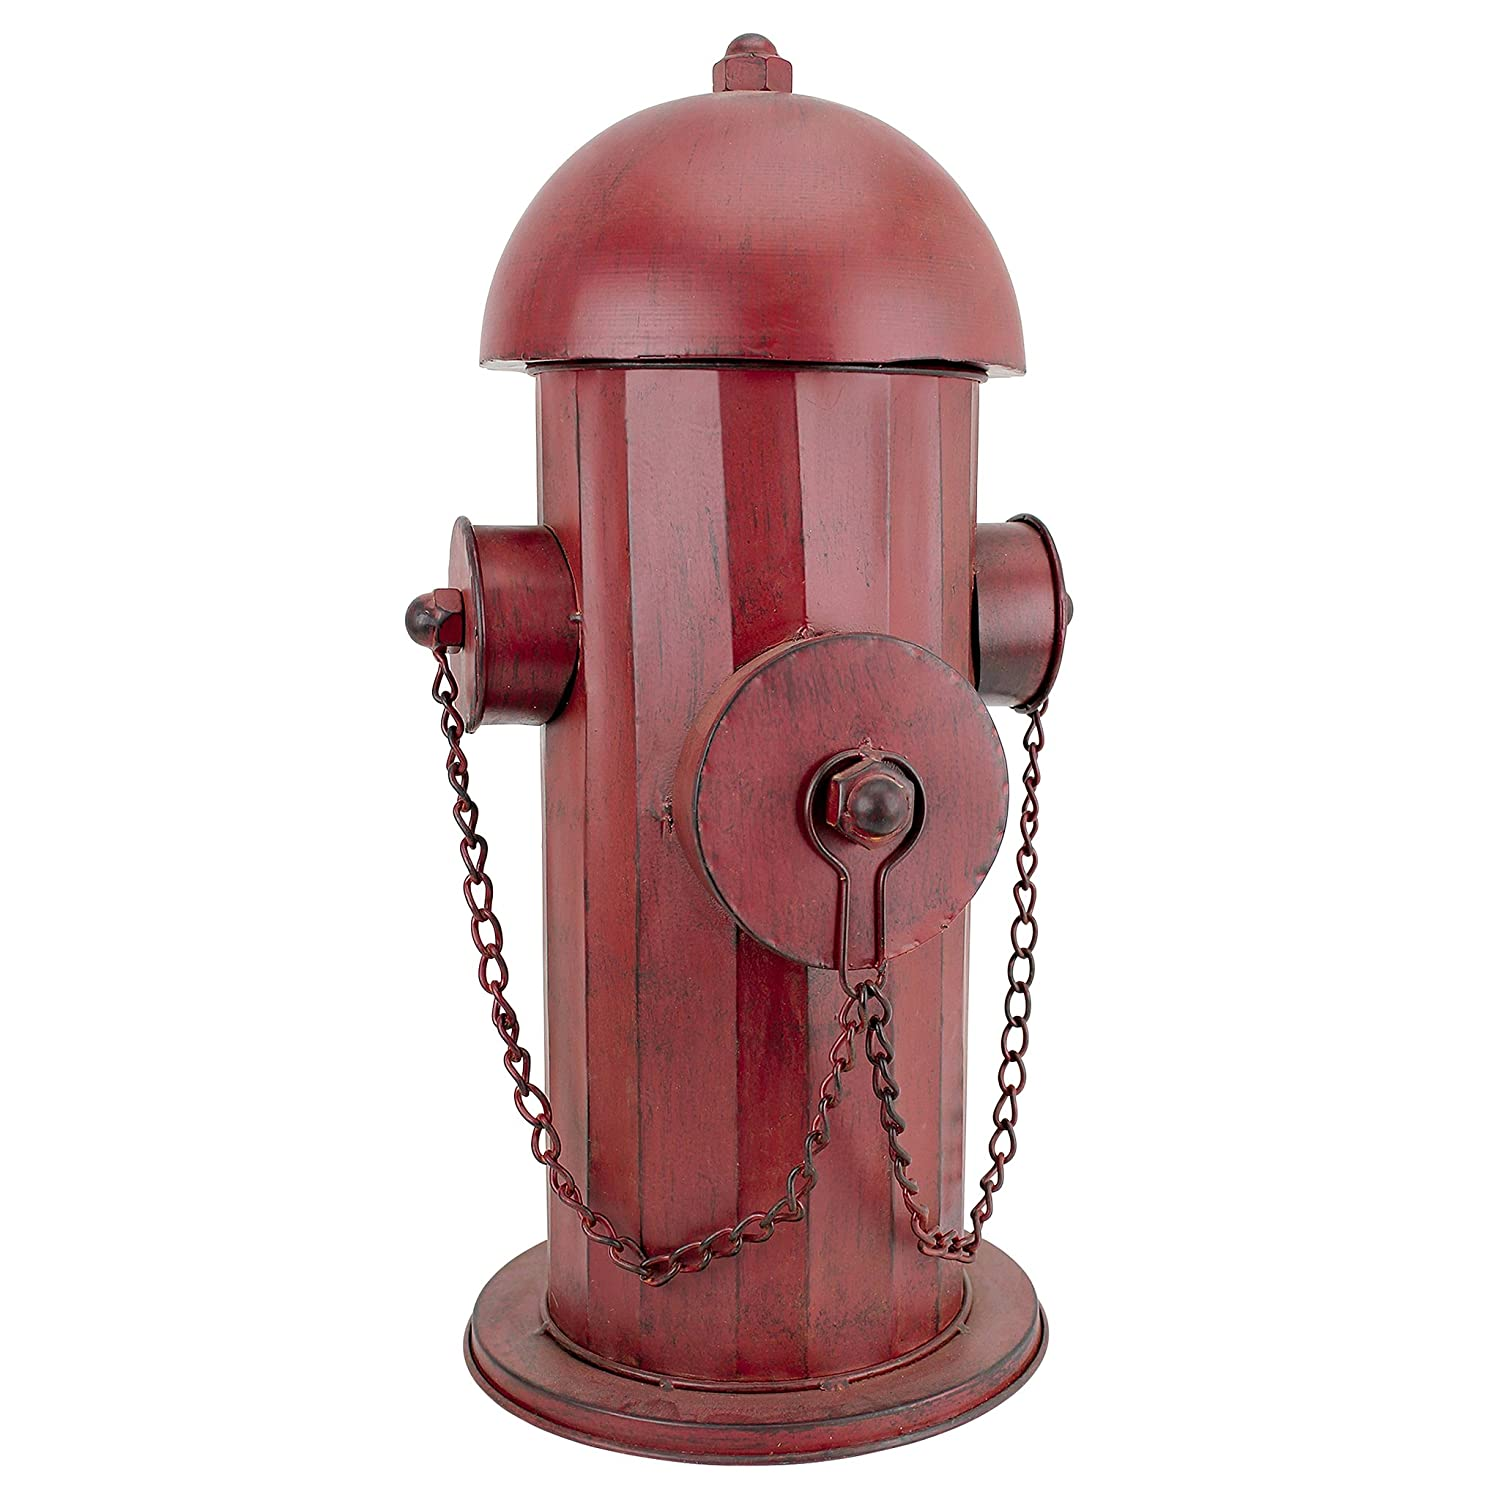 Design Toscano Fire Hydrant Statue Puppy Pee Post and Pet Storage Container, Medium 18 Inch, Metalware, Full Color